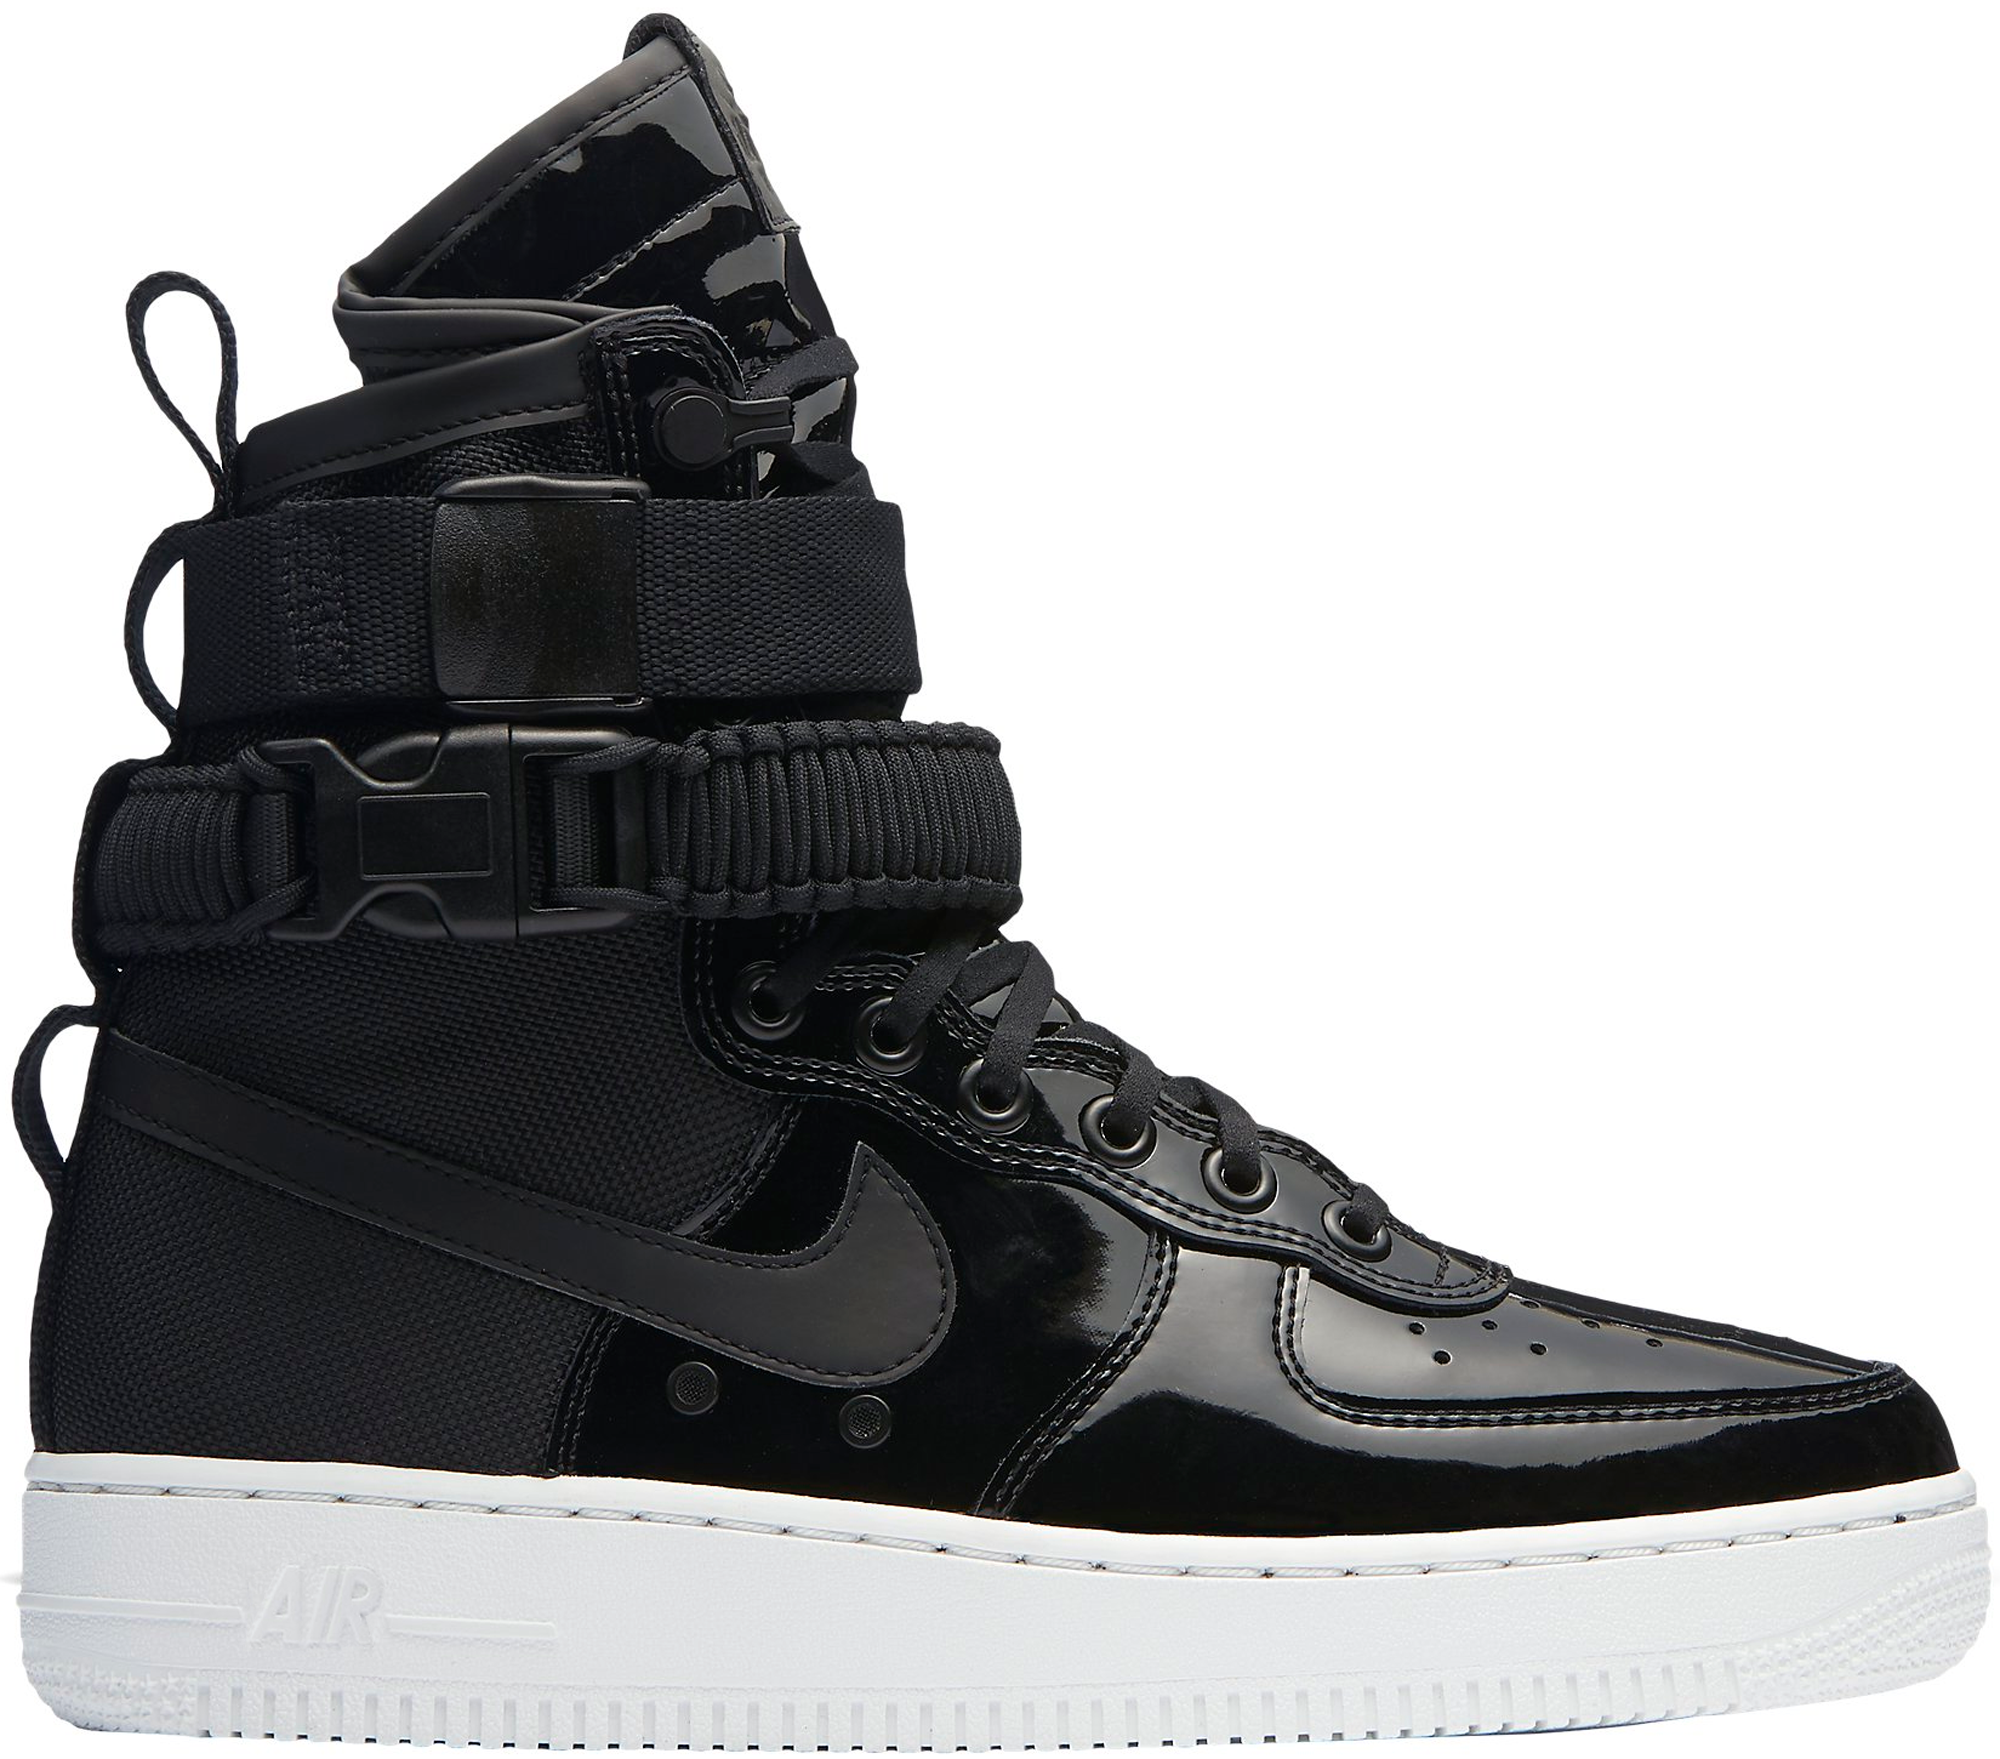 grey black womens nike air force 1 high shoes. Black Bedroom Furniture Sets. Home Design Ideas